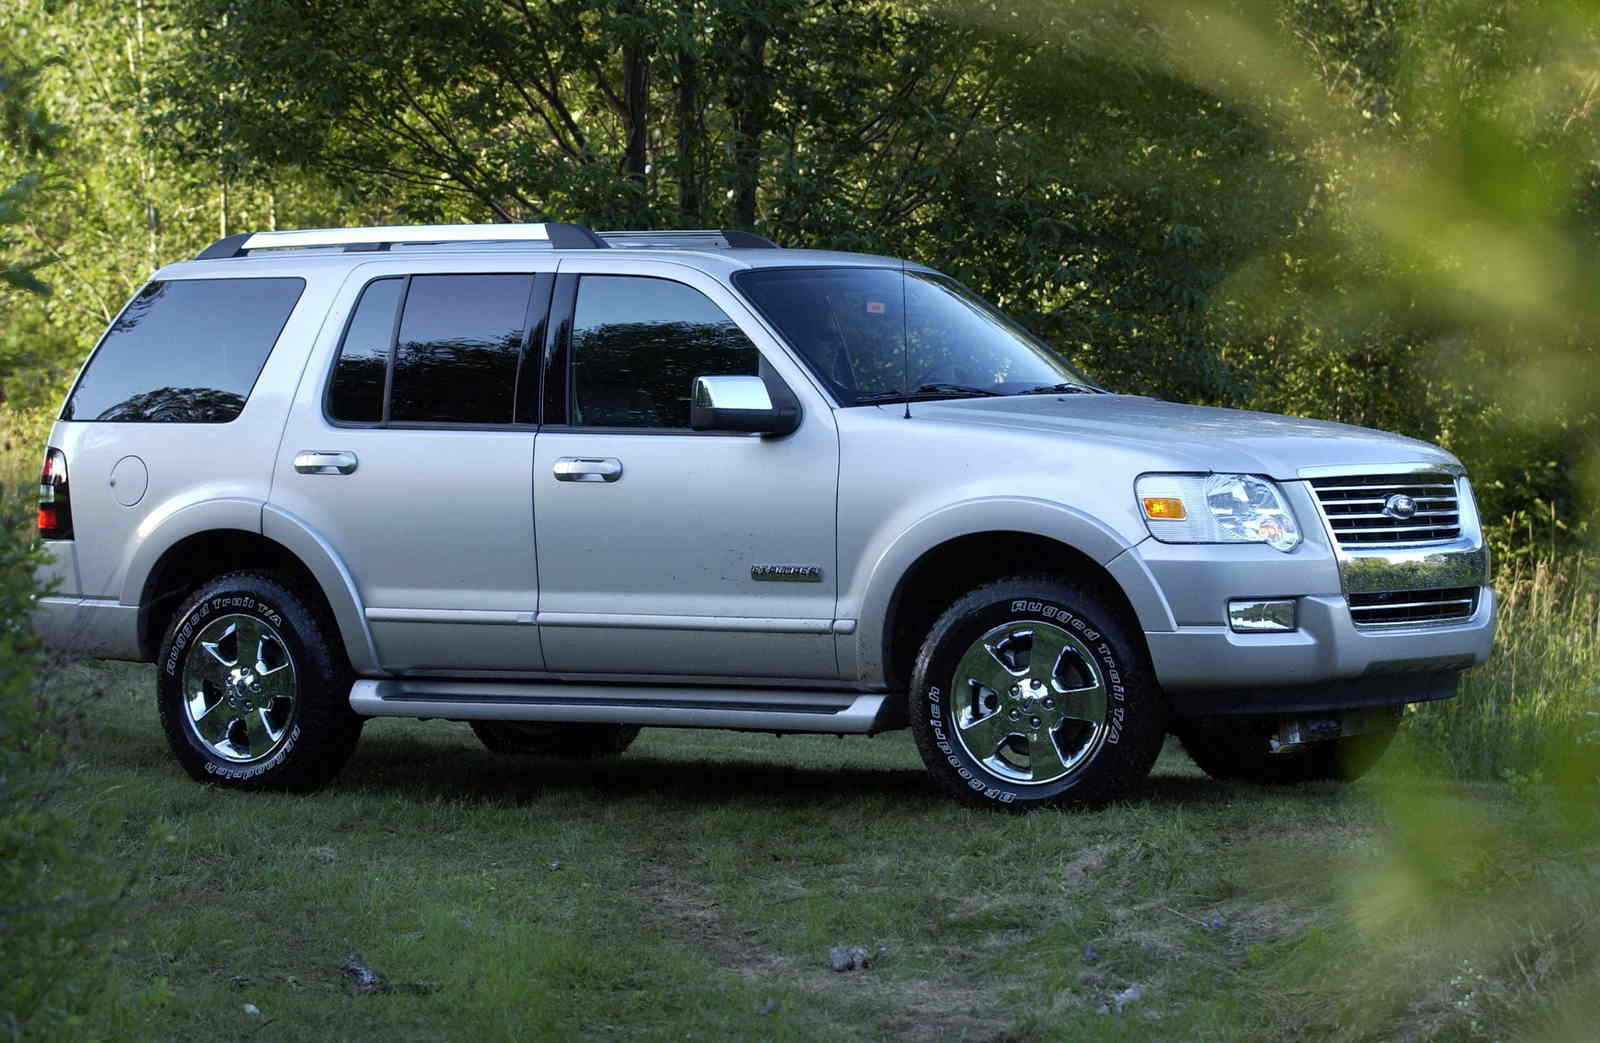 Ford Explorer,Sport Trac And Mercury Mountaineer Earn Highest IIHS Frontal Crash Test Rating ...